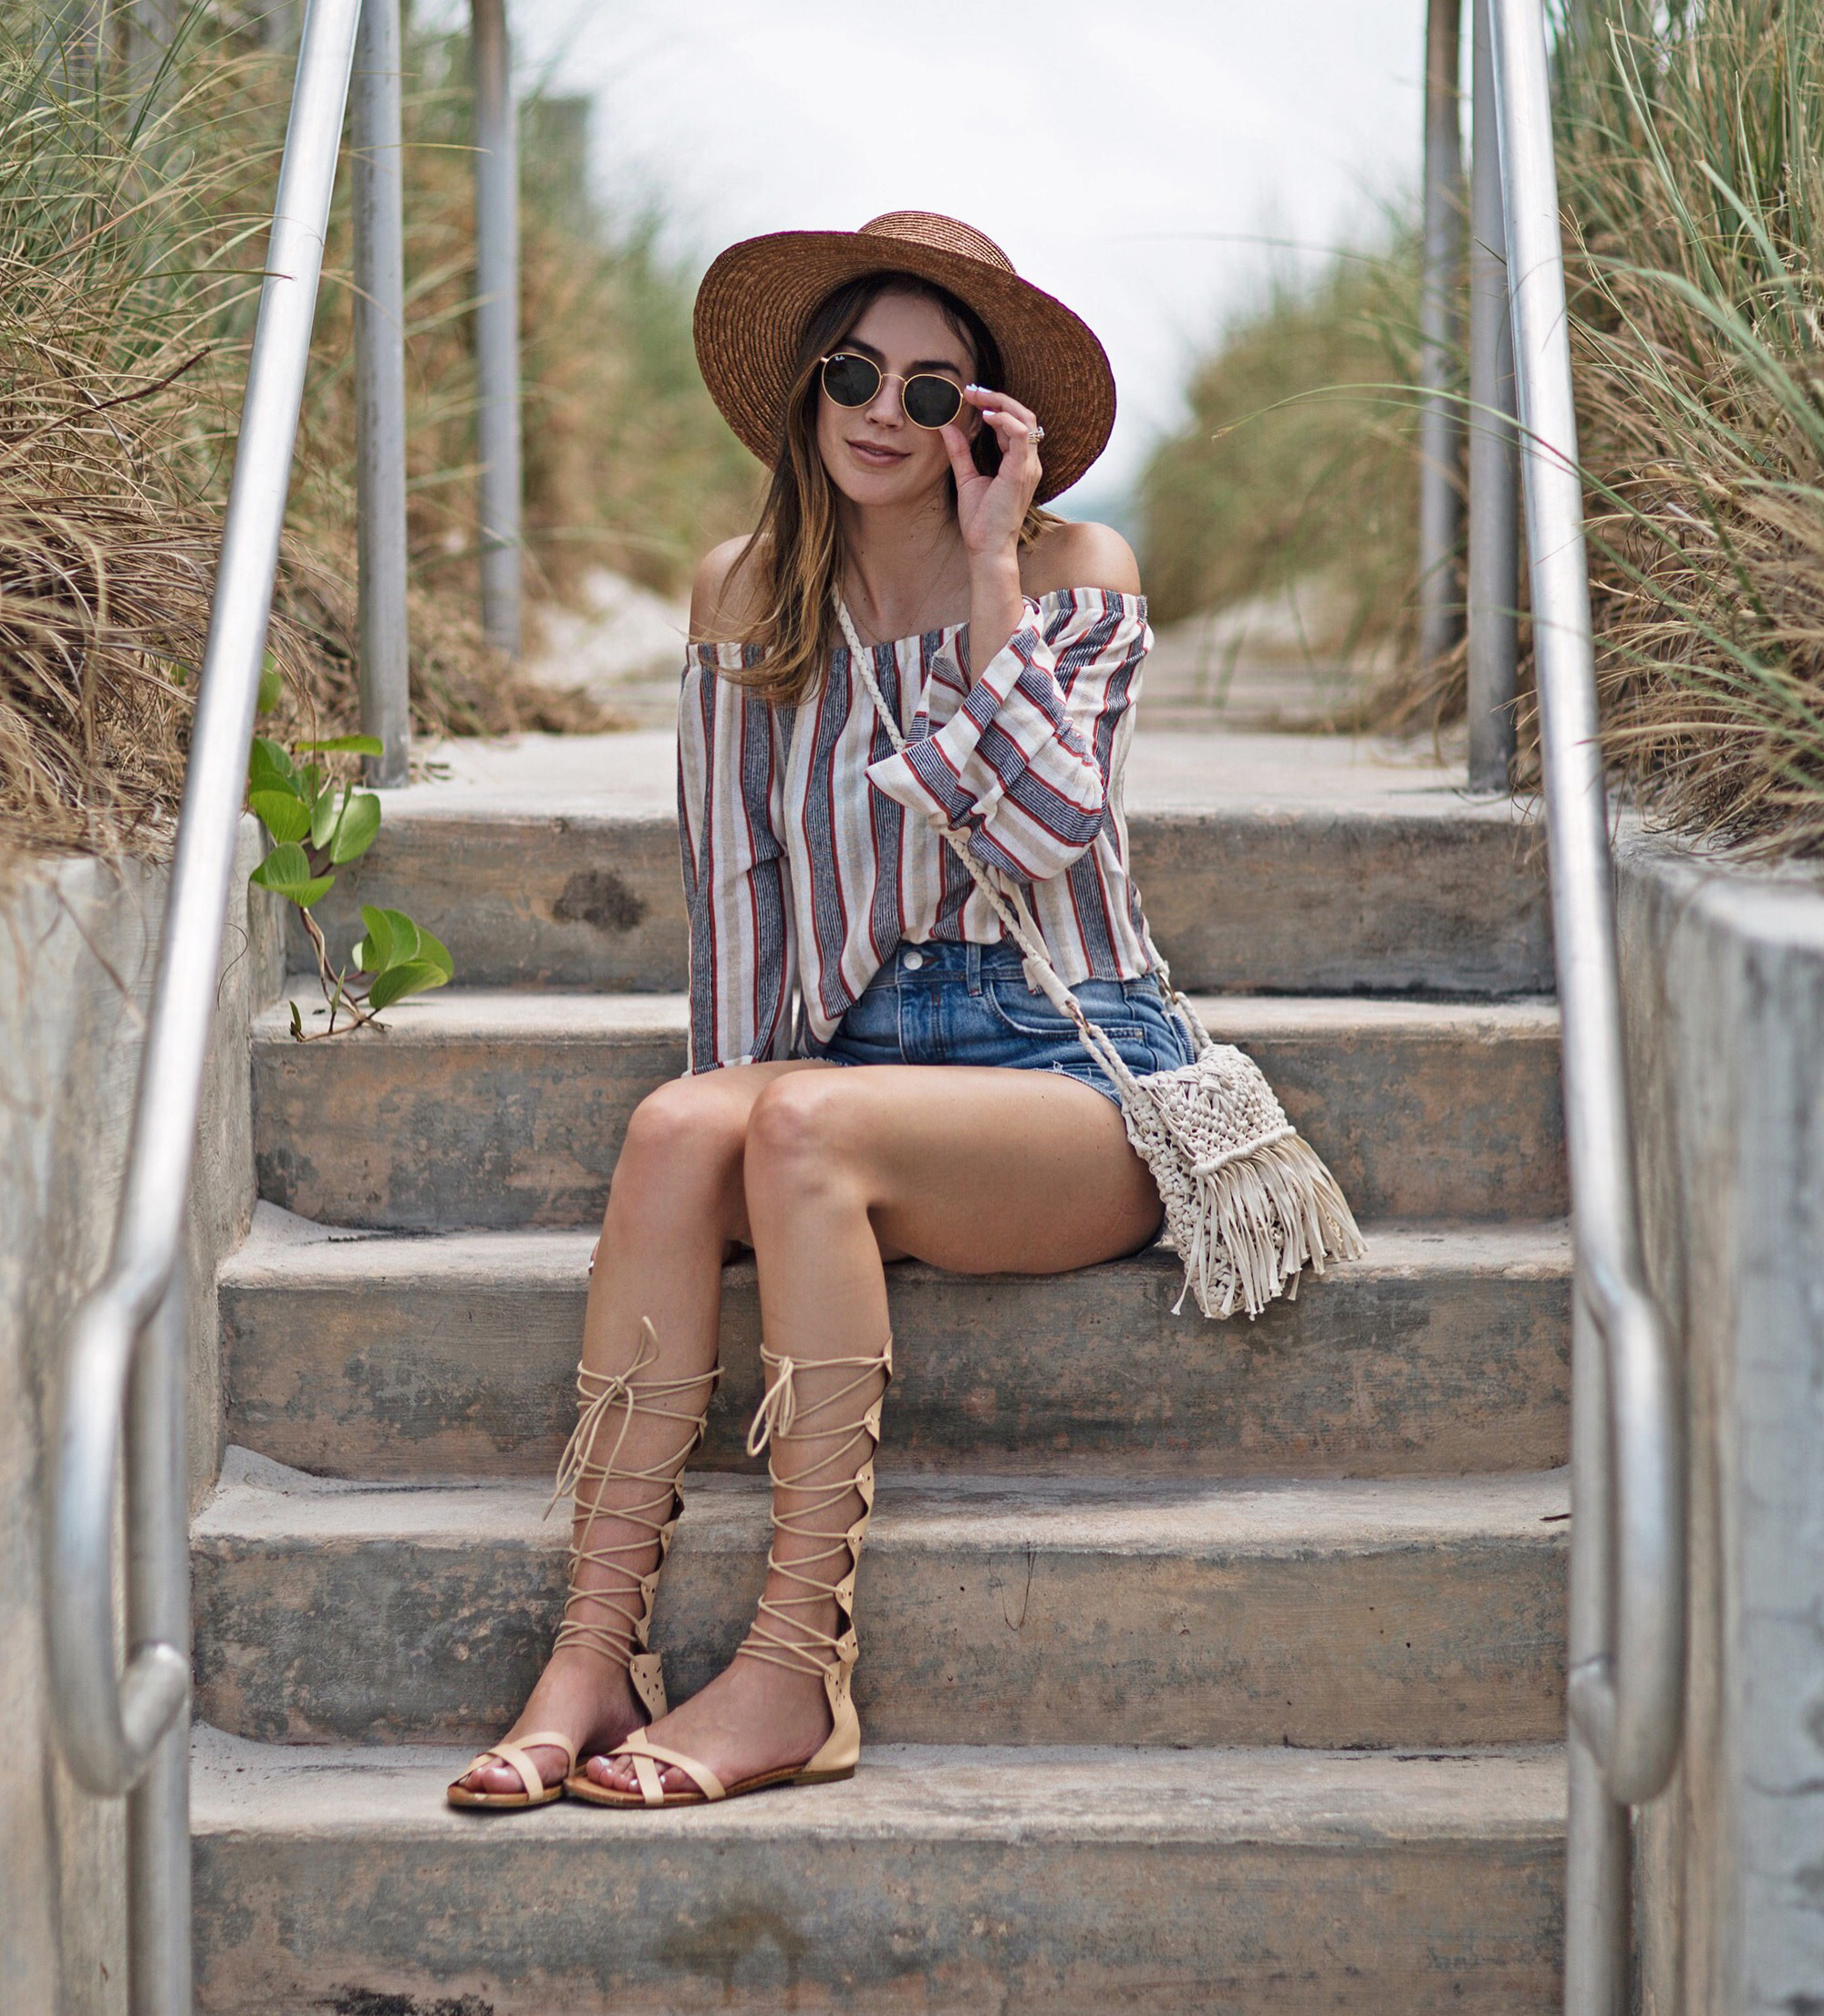 Lace Up Sandals Blogger Style